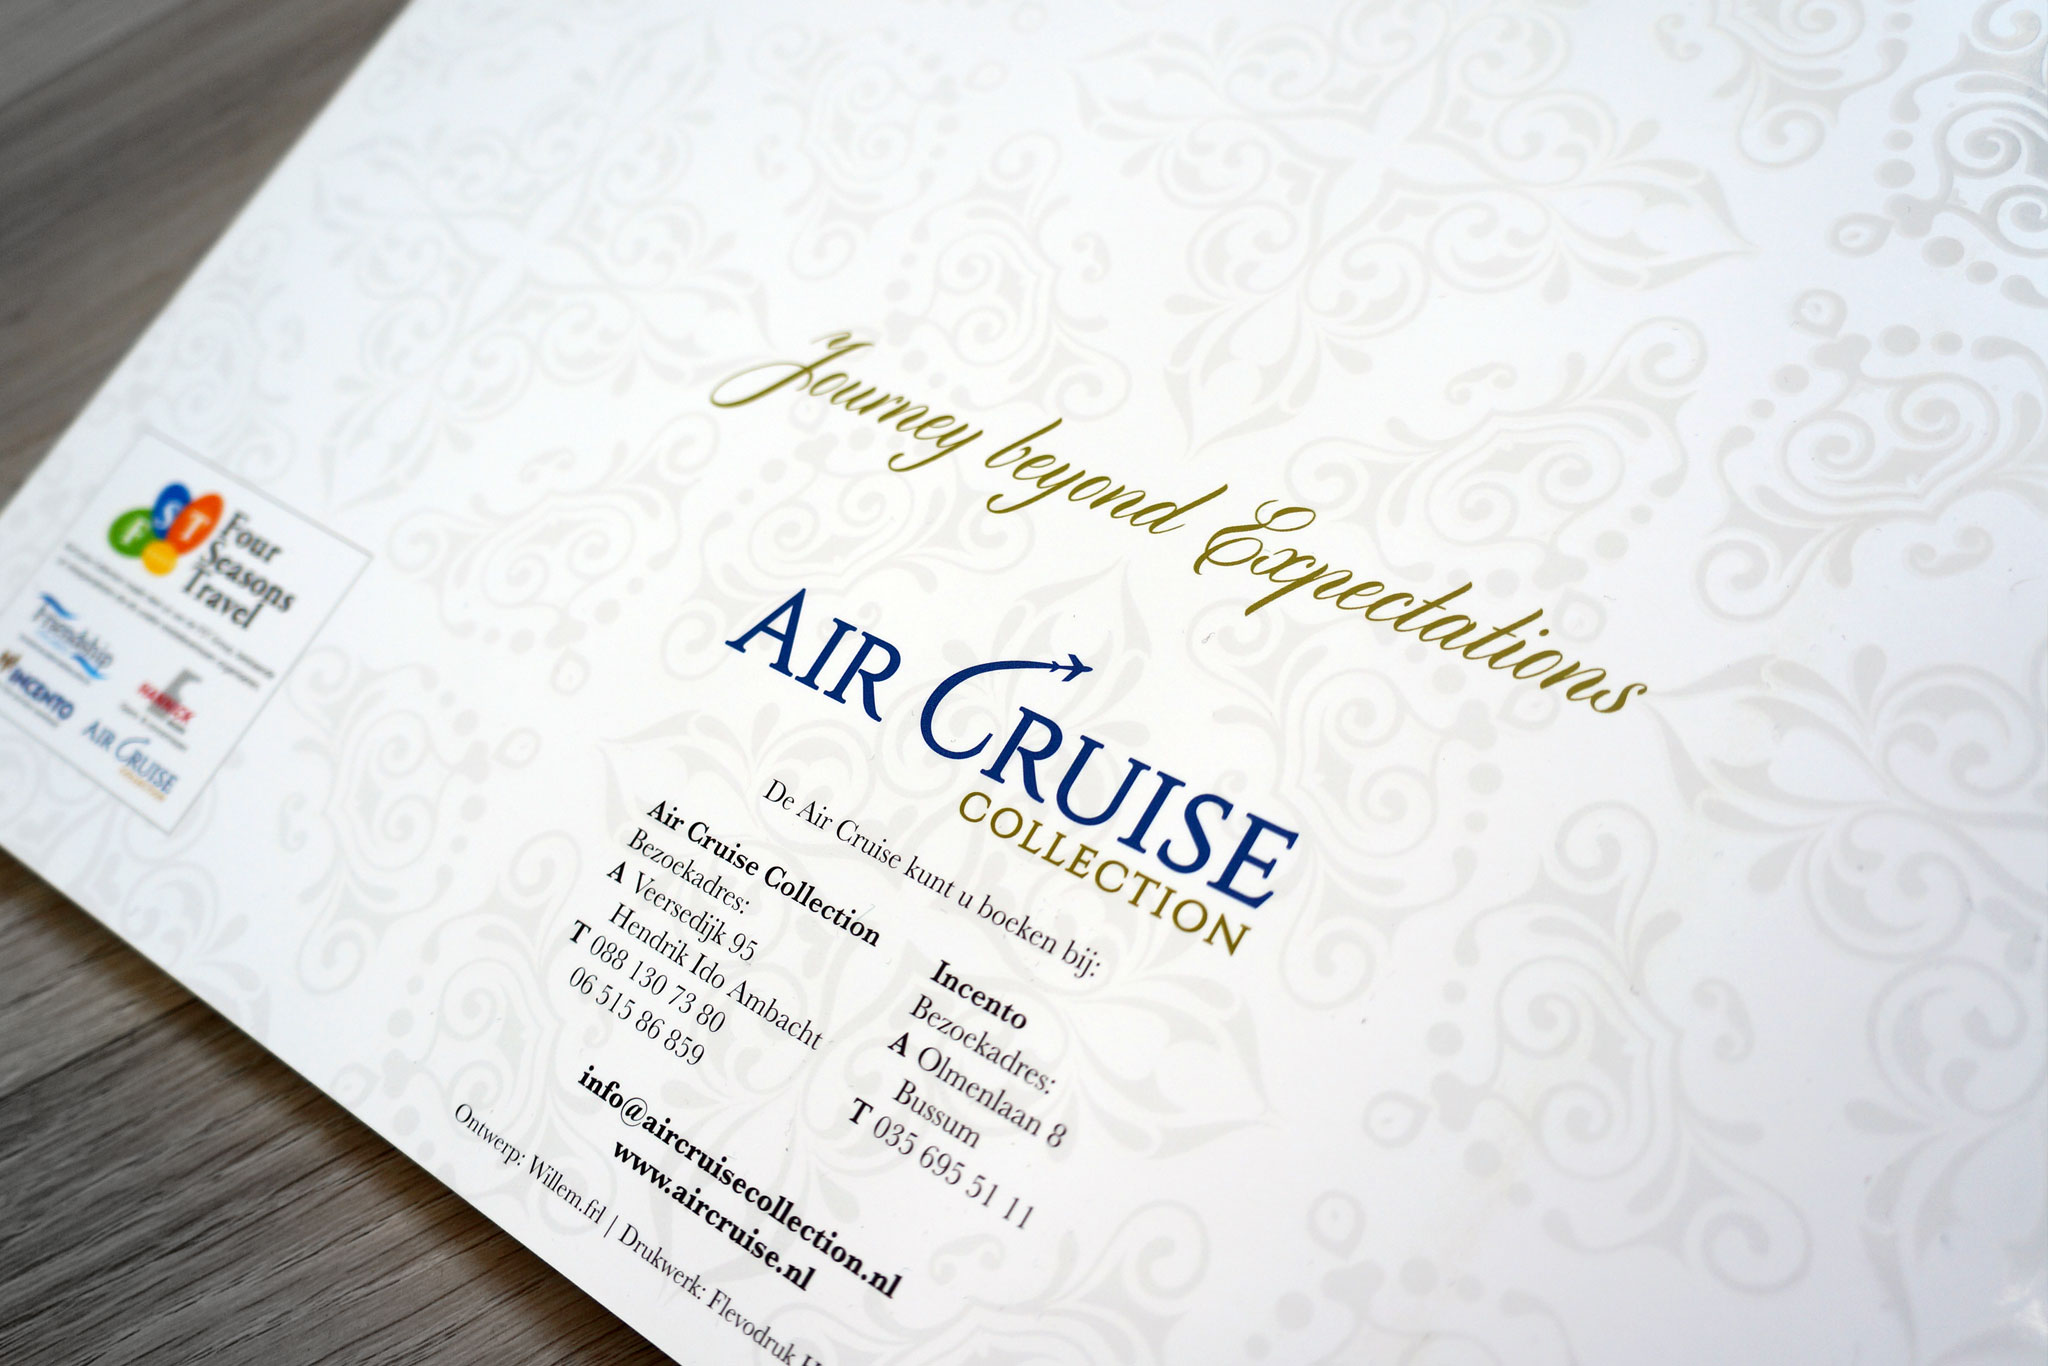 Ontwerp en ontwikkeling brochure Air Cruise Collection-10